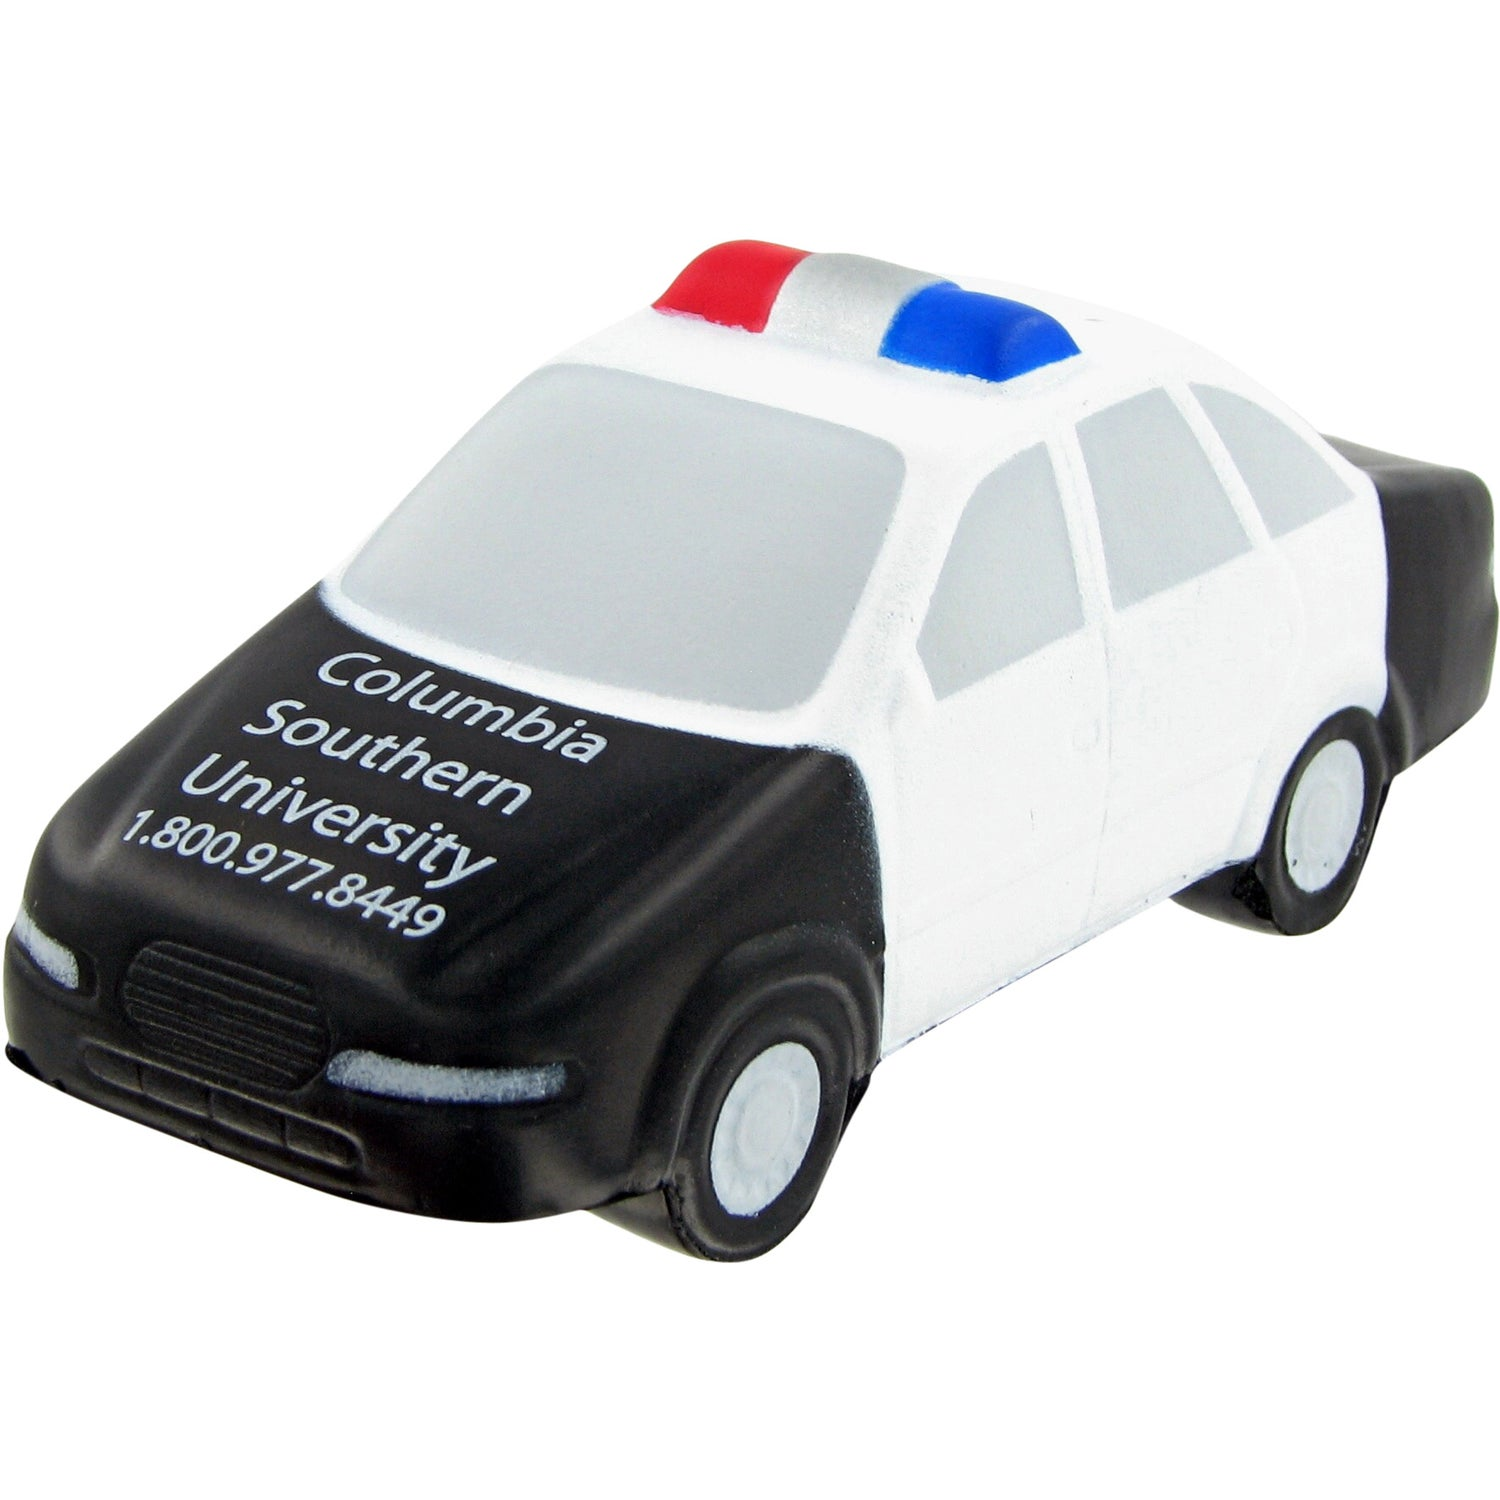 Police Car Stress Toy